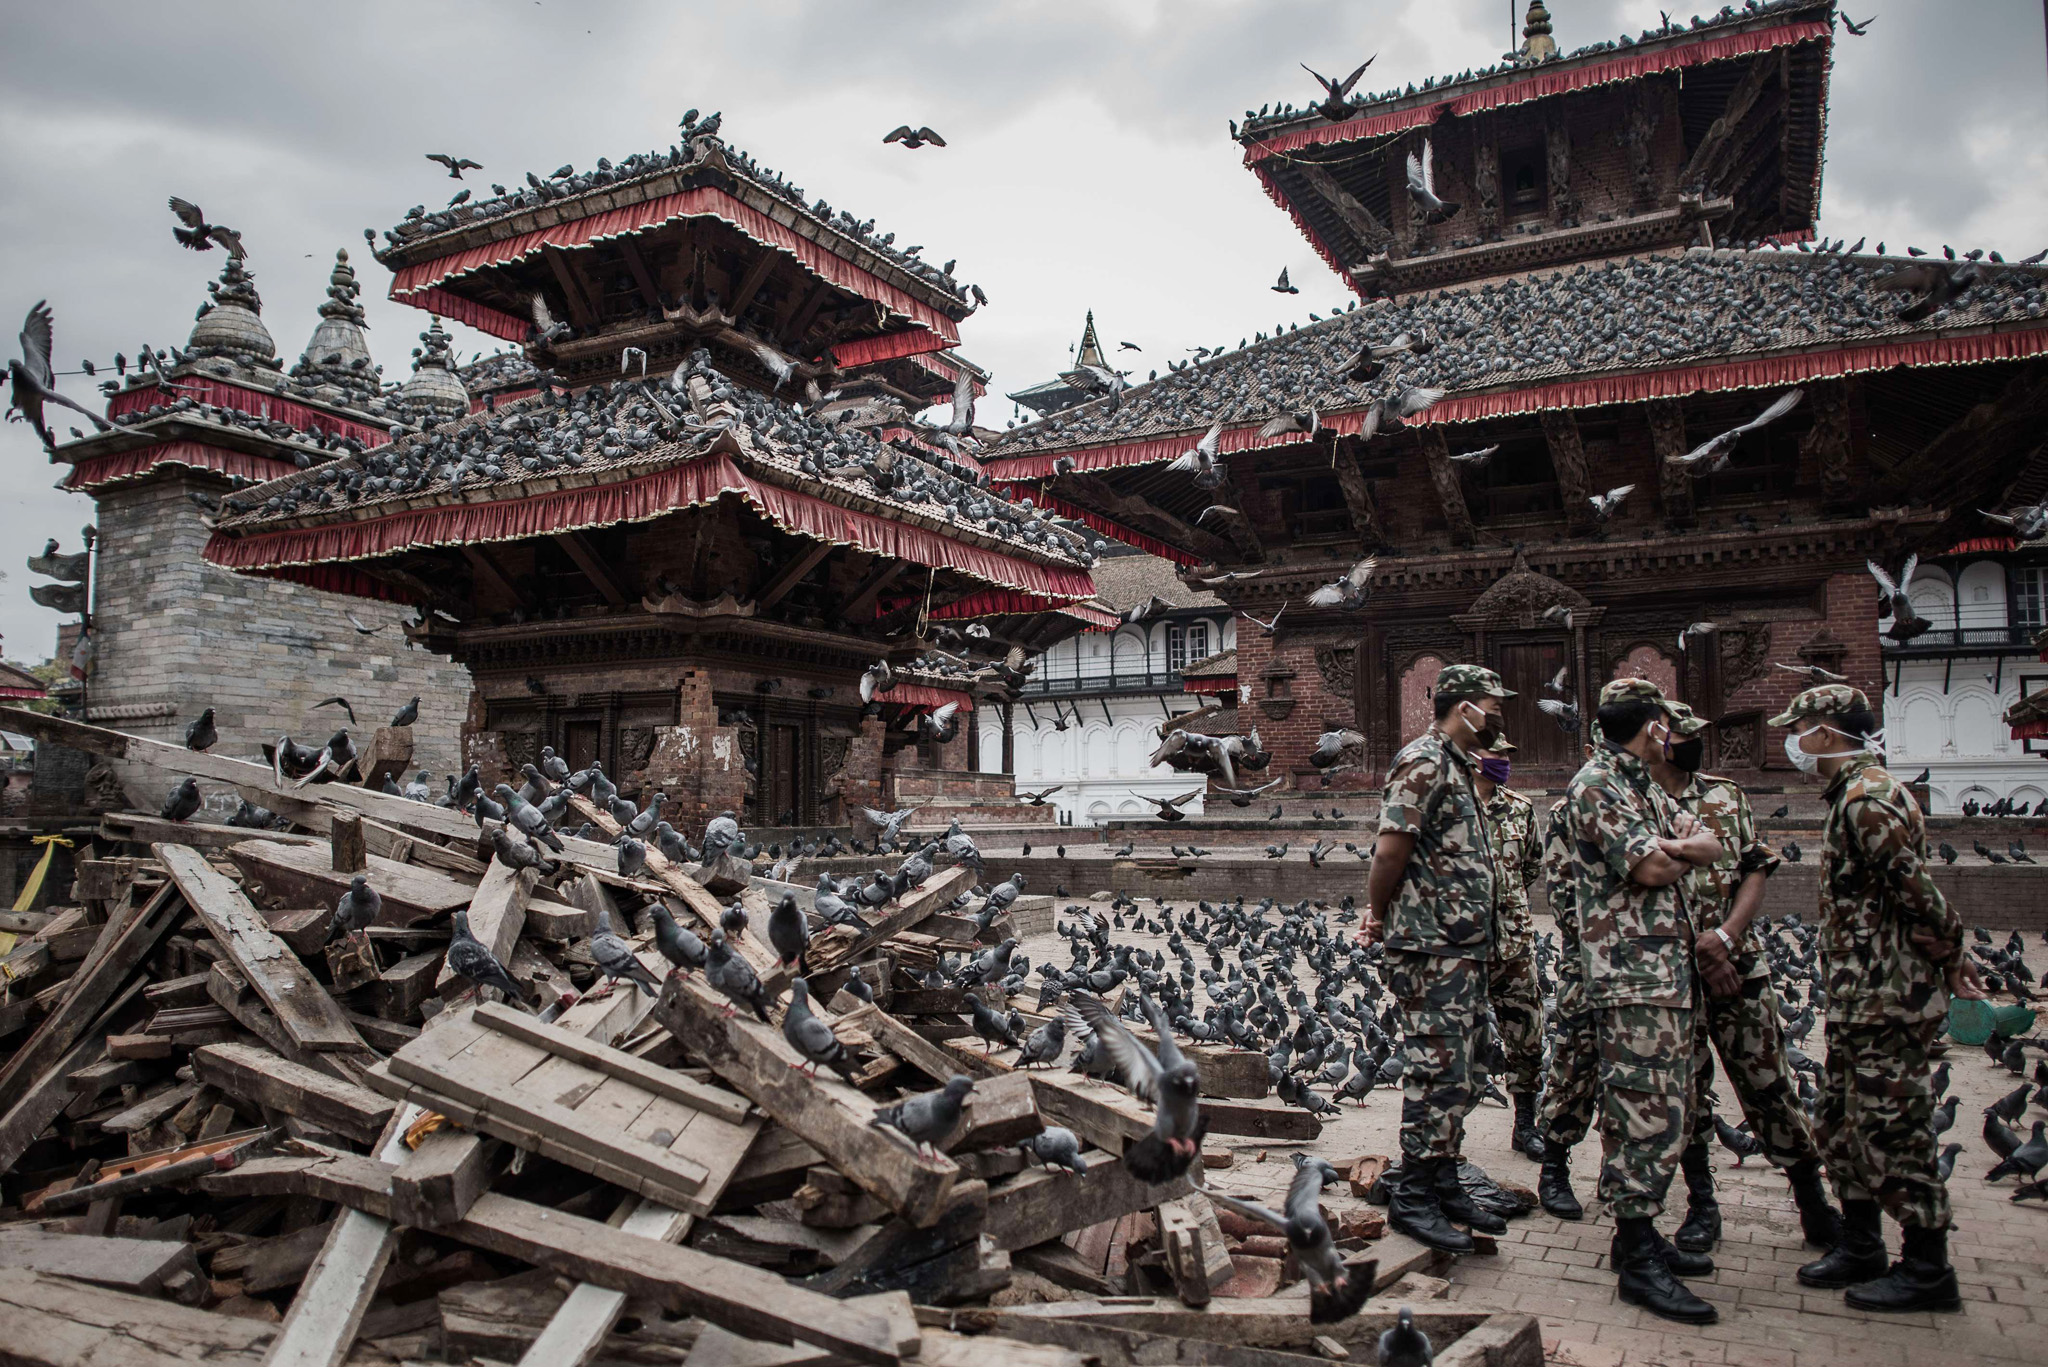 TOPSHOTS Nepalese soldiers stand next to...TOPSHOTS Nepalese soldiers stand next to wrecked buildings at Durbar square, a UNESCO world heritage site that was badly damaged by the earthquake, in the historical centre of Kathmandu on April 29, 2015,  following a 7.8 magnitude earthquake which struck the Himalayan nation on April 25. Rescuers are facing a race against time  to find survivors of a mammoth earthquake that killed more than 5,000 people when it through Nepal five days ago and devastated large parts of one of Asia's poorest nations.    AFP PHOTO / Philippe LopezPHILIPPE LOPEZ/AFP/Getty Images